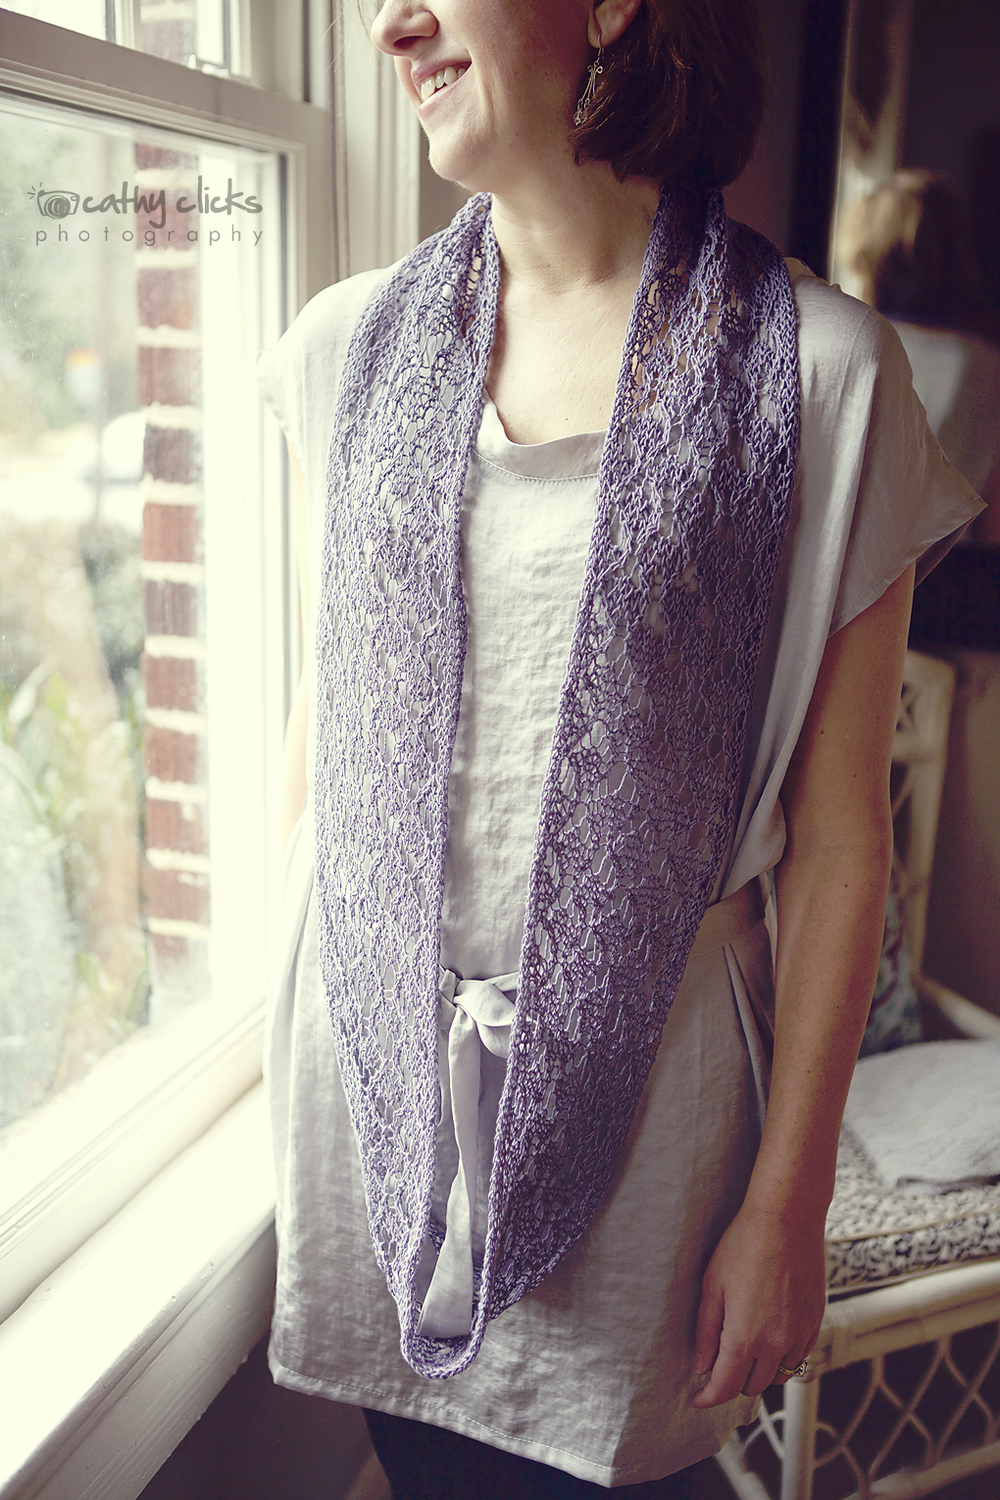 Linen Lace Infinity Scarf - worn by the creator herself.